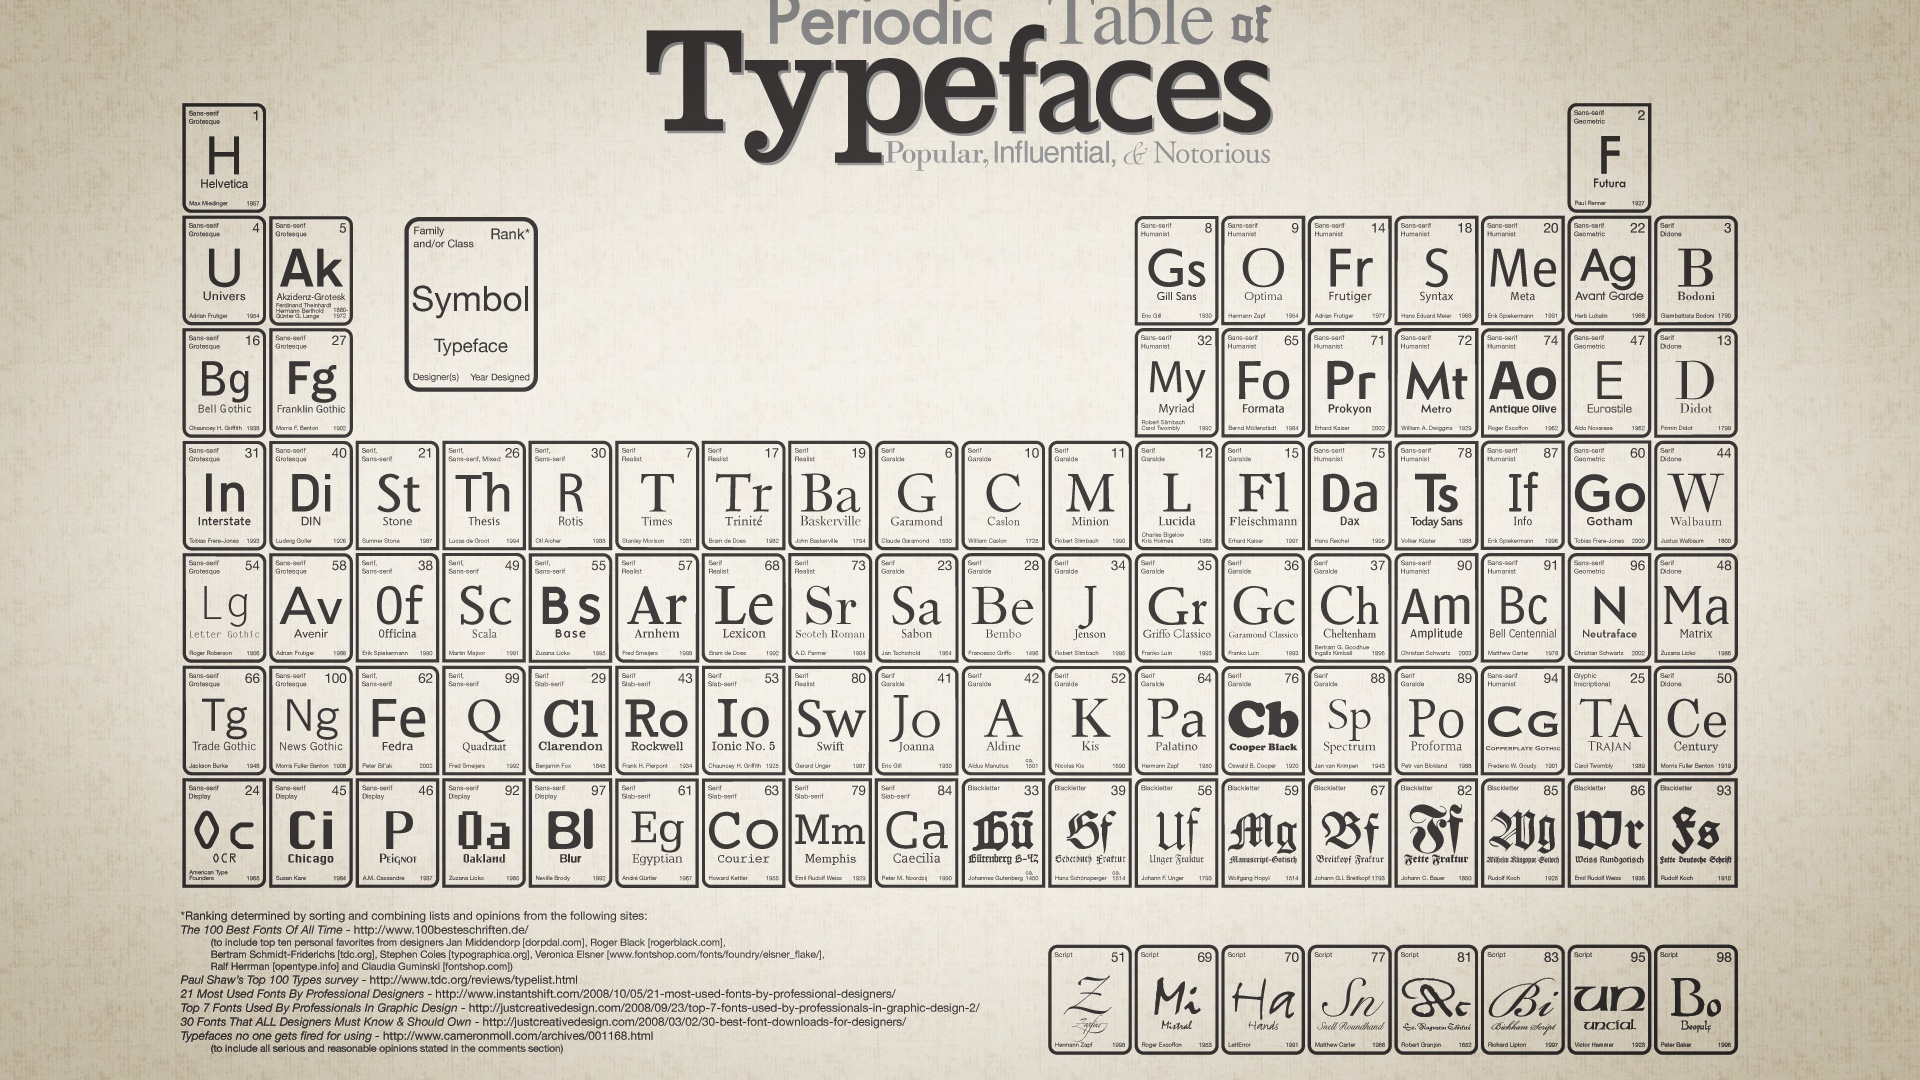 1920x1080 periodic table of typefaces desktop pc and mac wallpaper urtaz Images